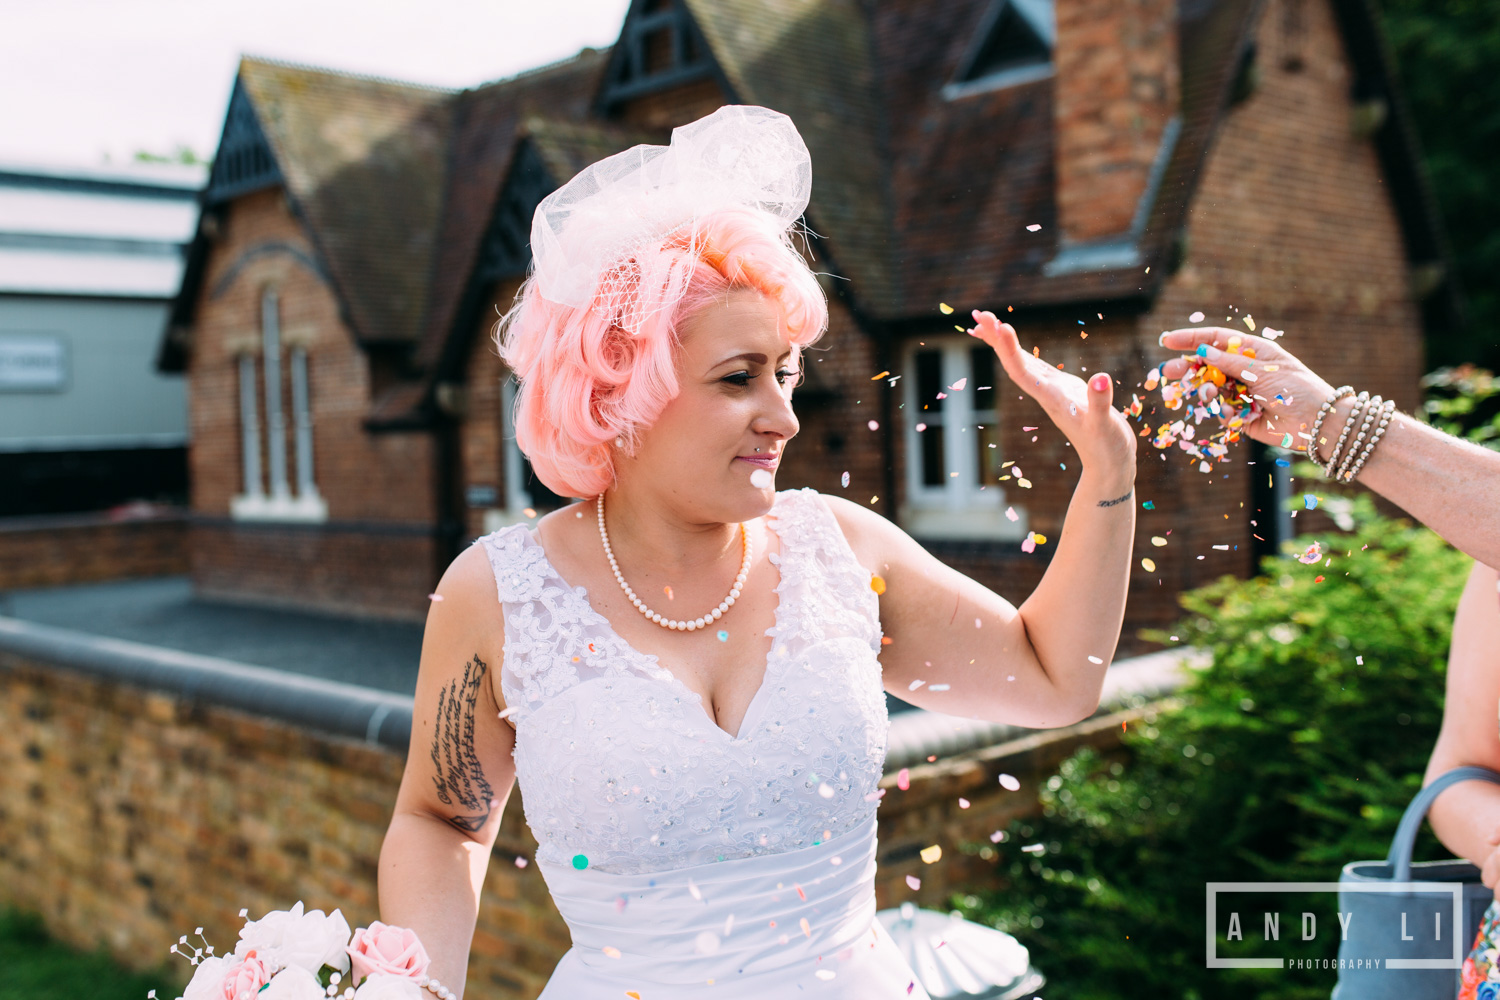 Blists Hill Ironbridge Wedding Photography-Andy Li Photography-373.jpg